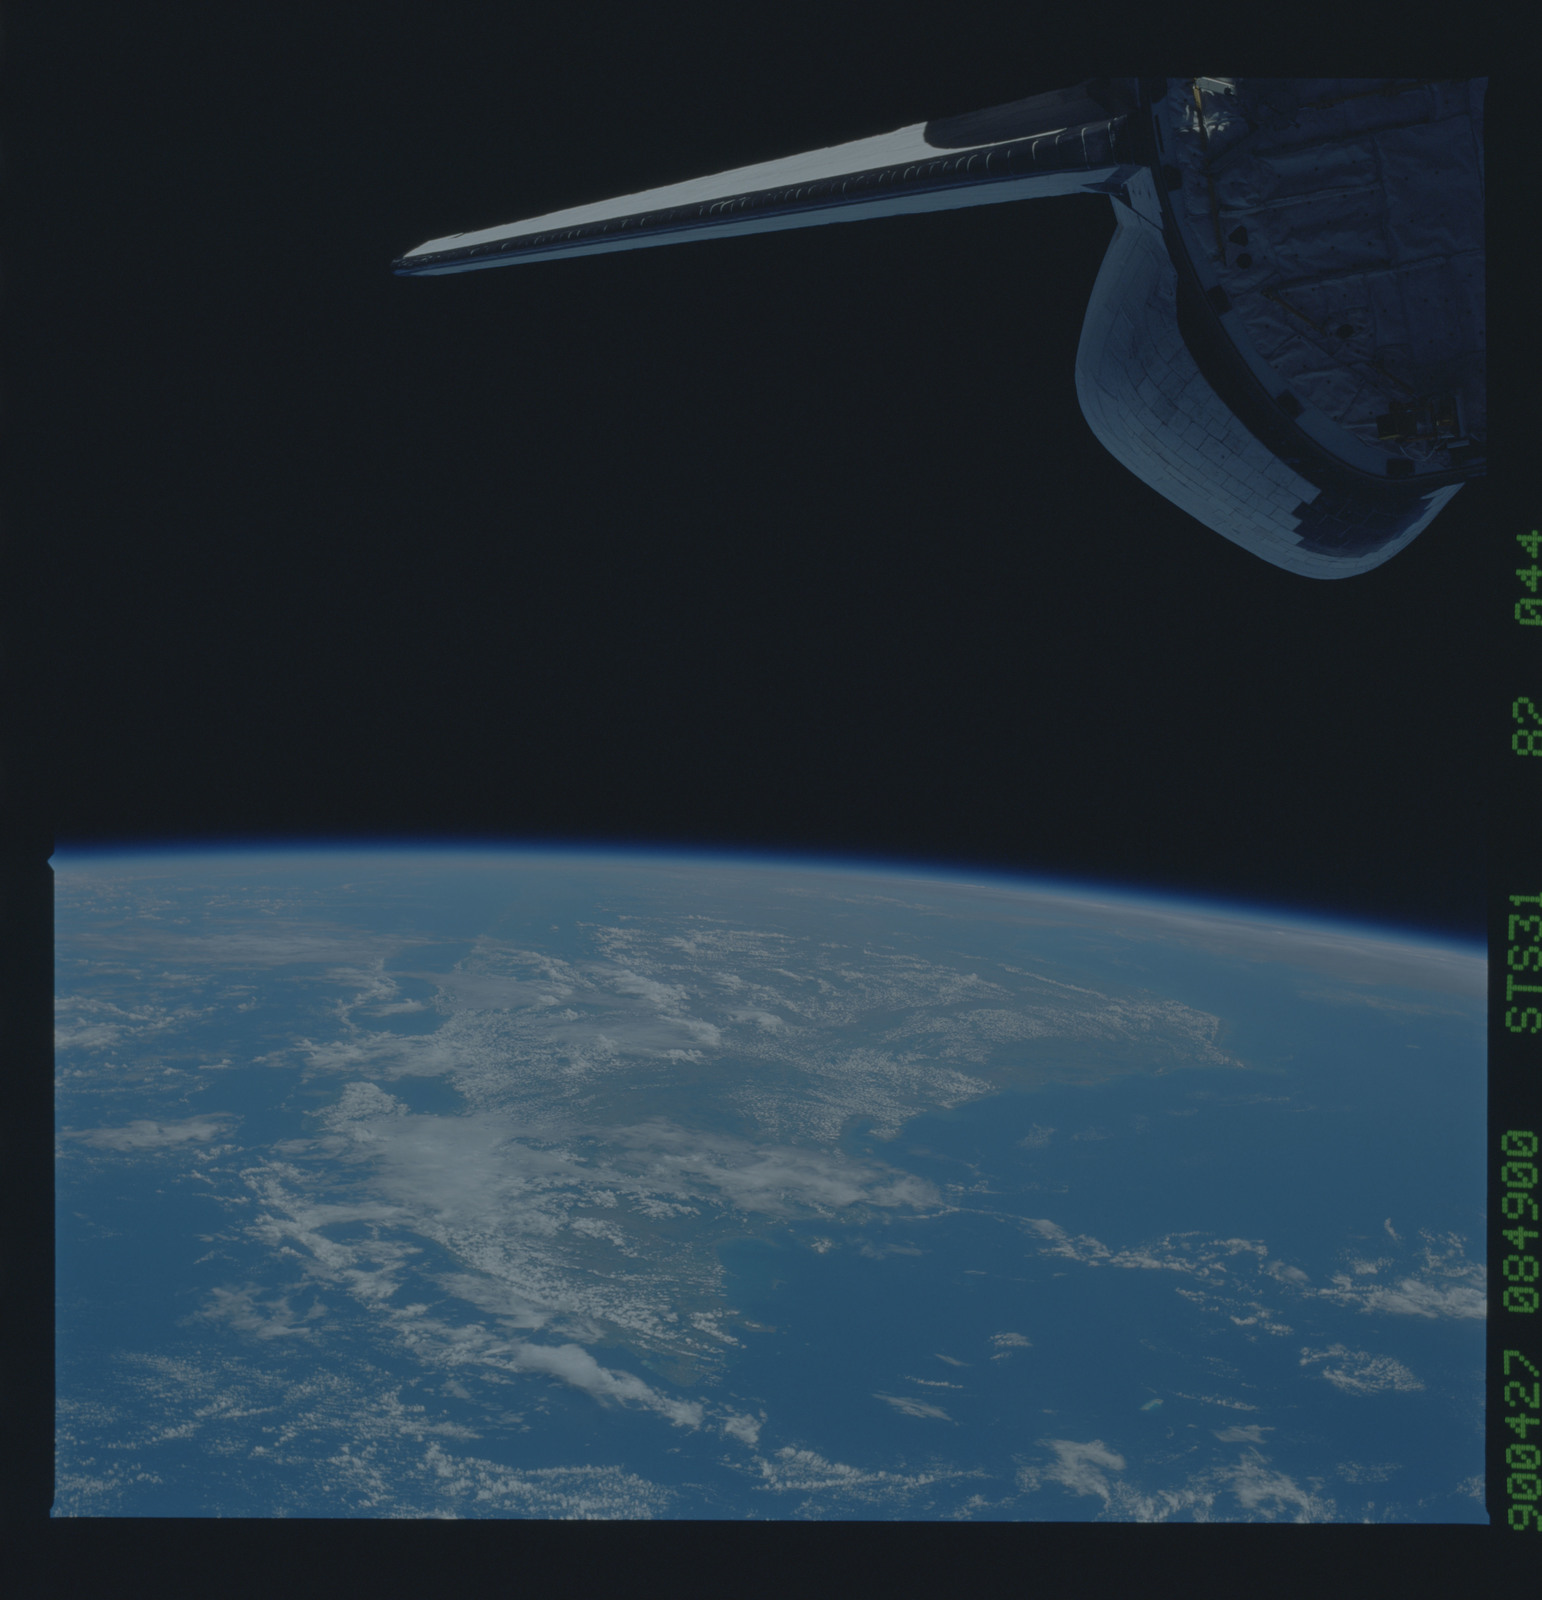 S31-82-044 - STS-031 - STS-31 earth observations